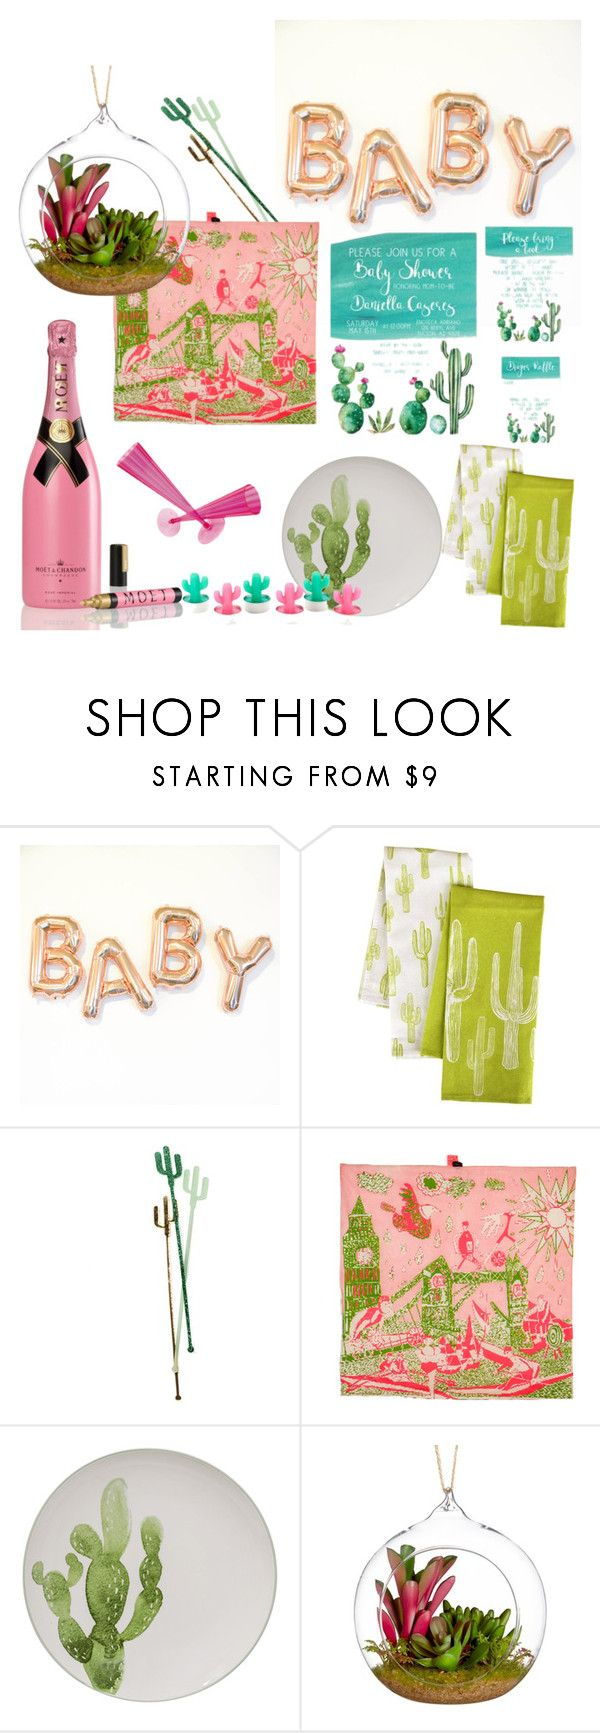 3030 best party images on Pinterest Birthday party ideas